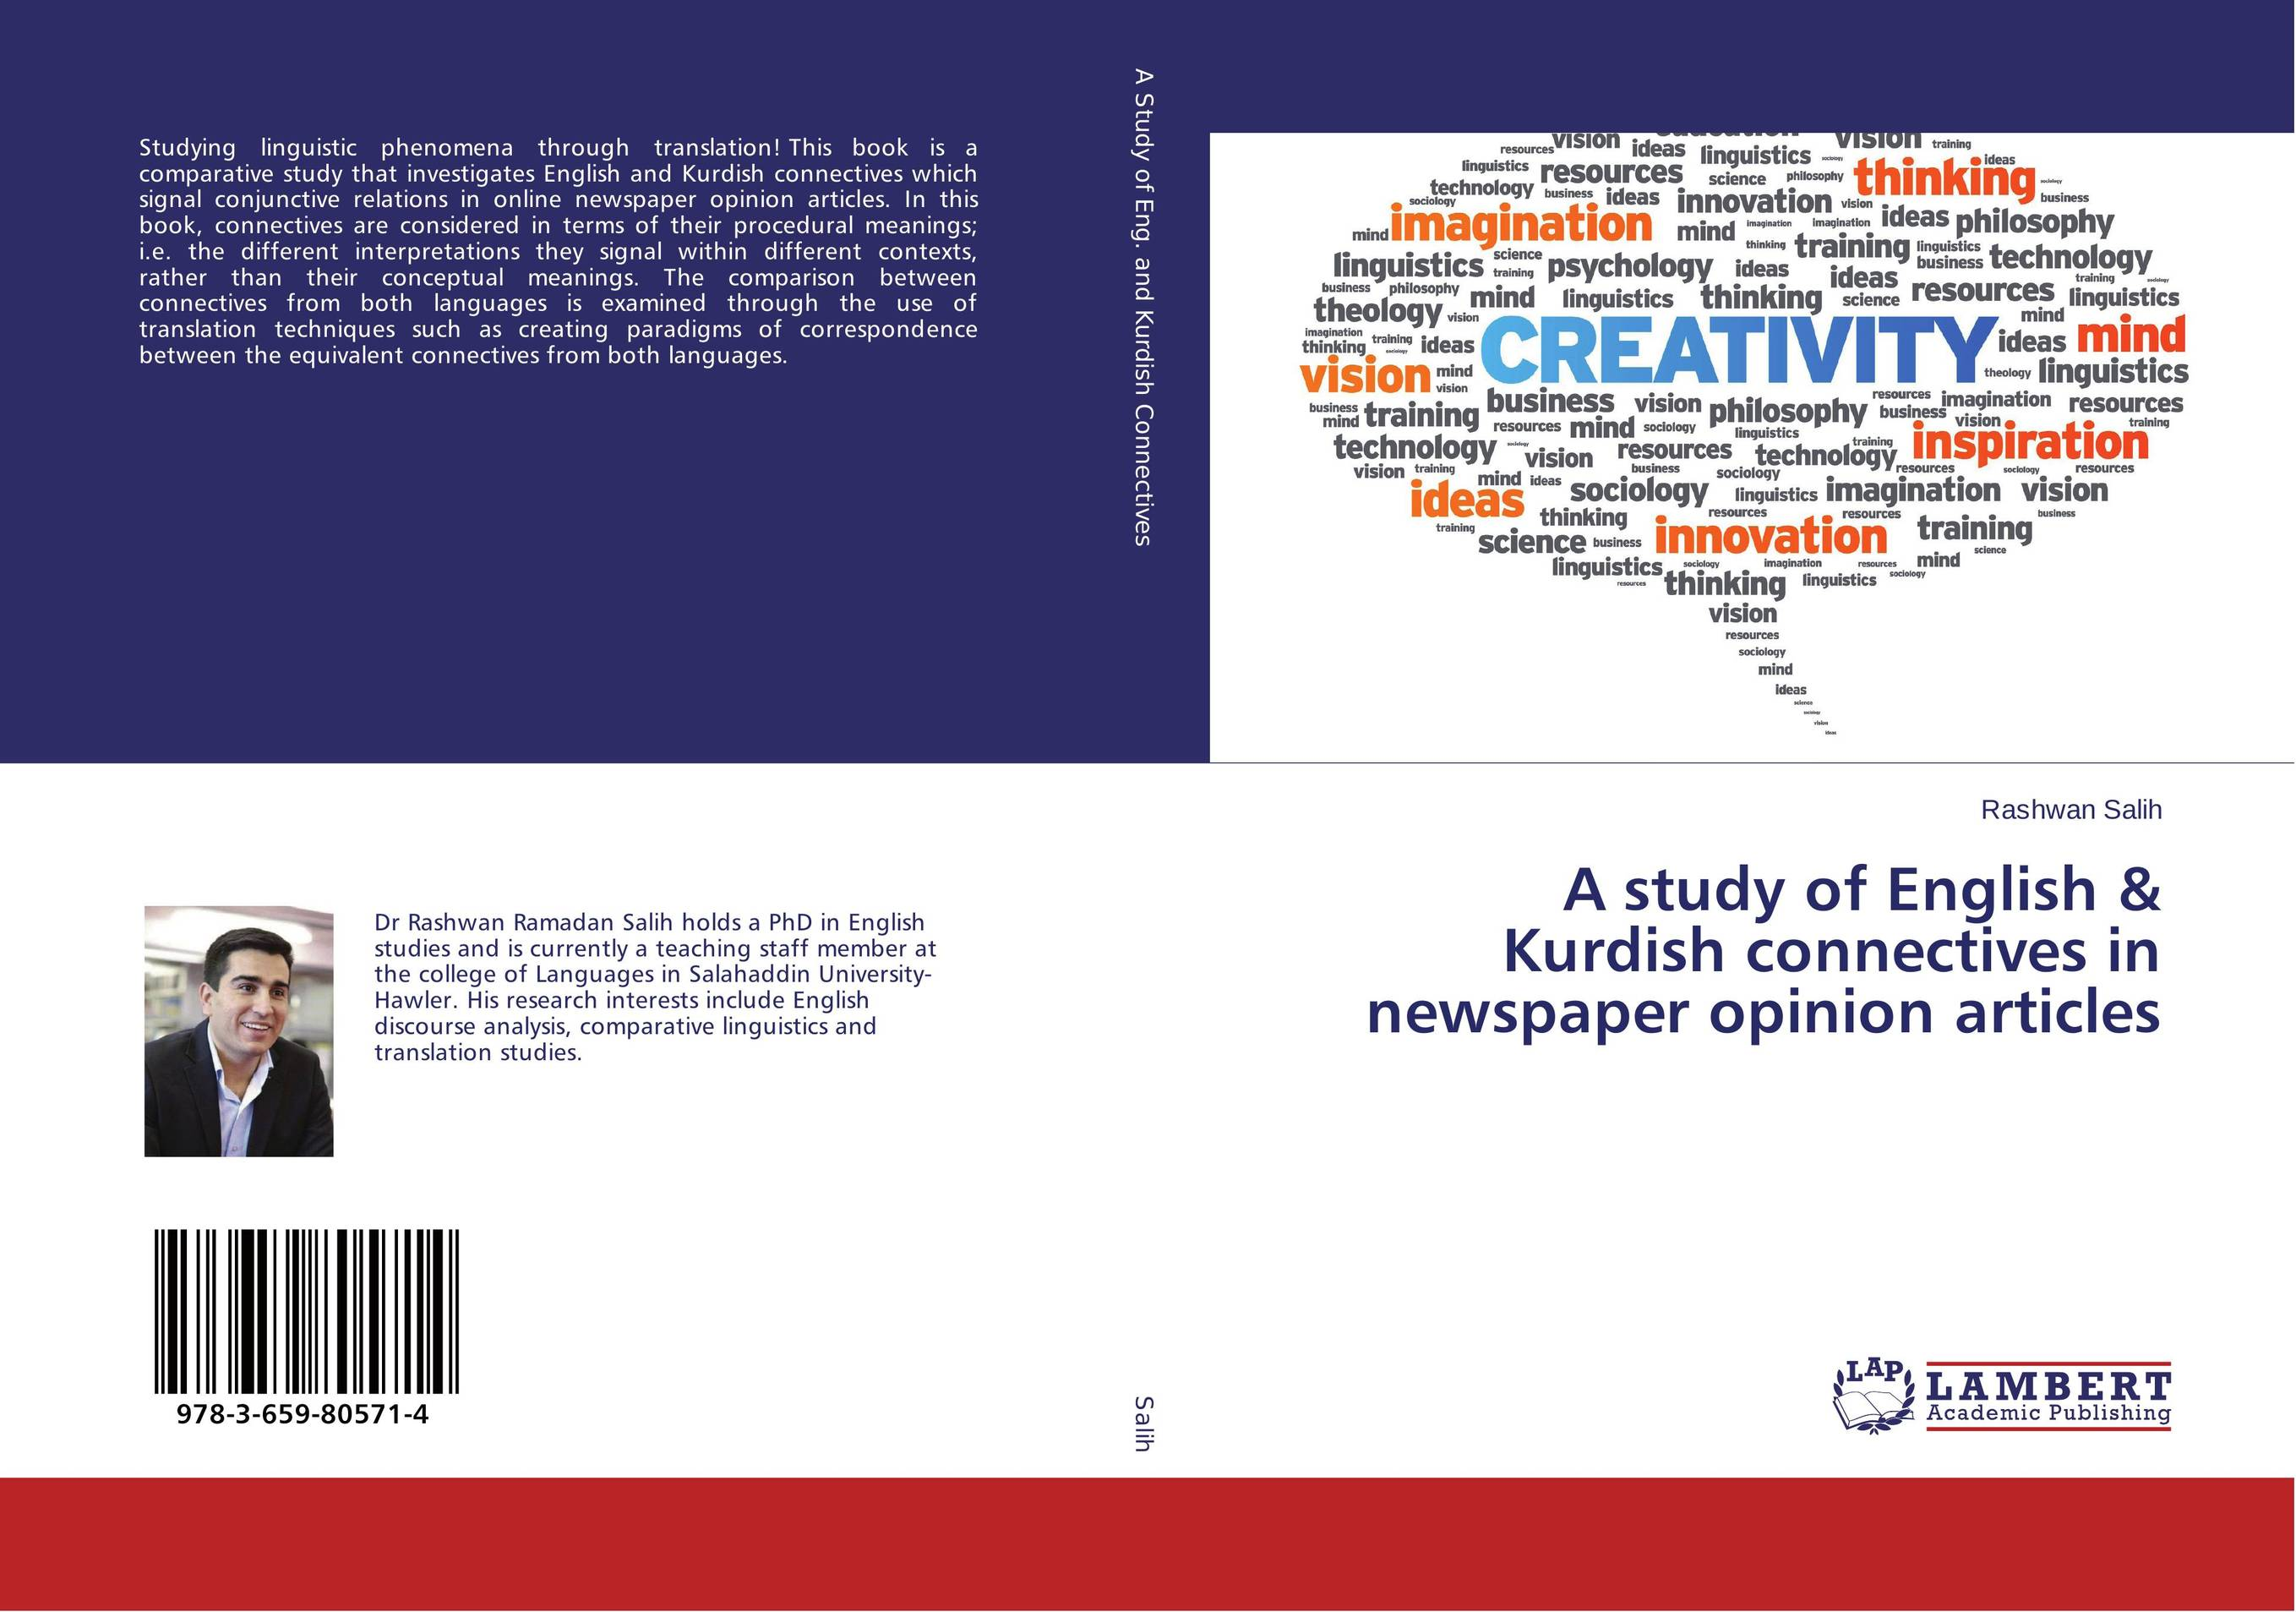 A study of English & Kurdish connectives in newspaper opinion articles